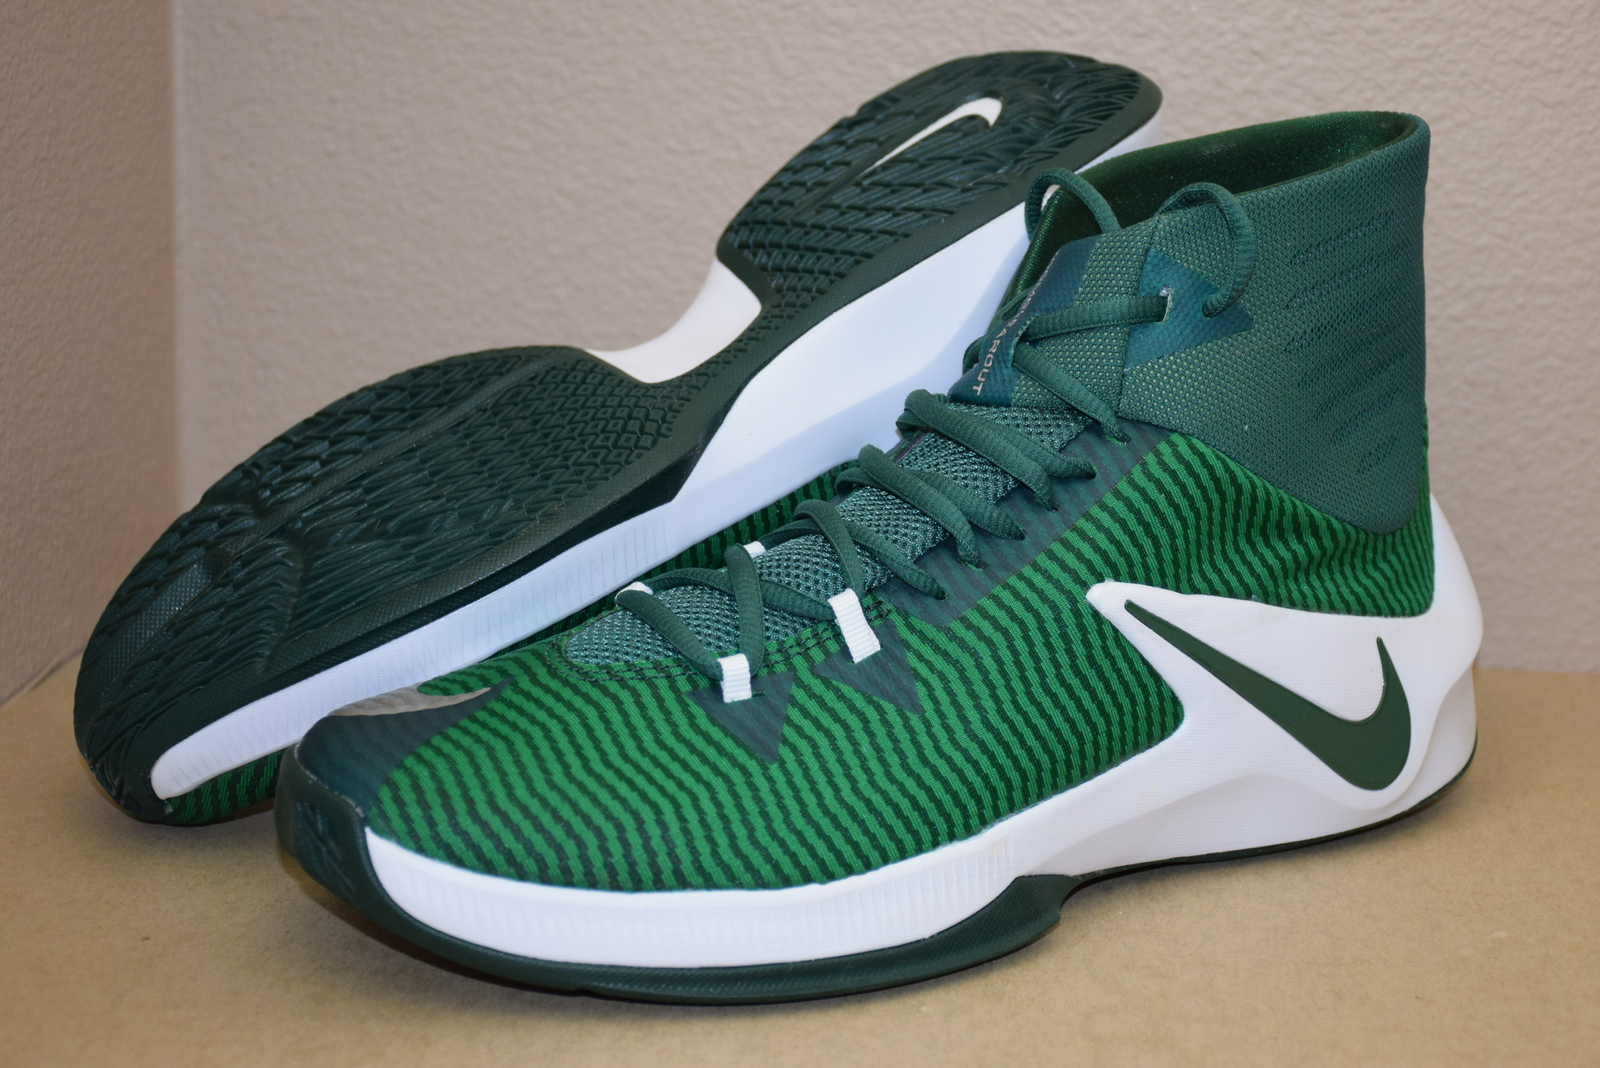 02f290616200 ... where can i buy new nike zoom clear out tb mens basketball shoes sz 13  844372